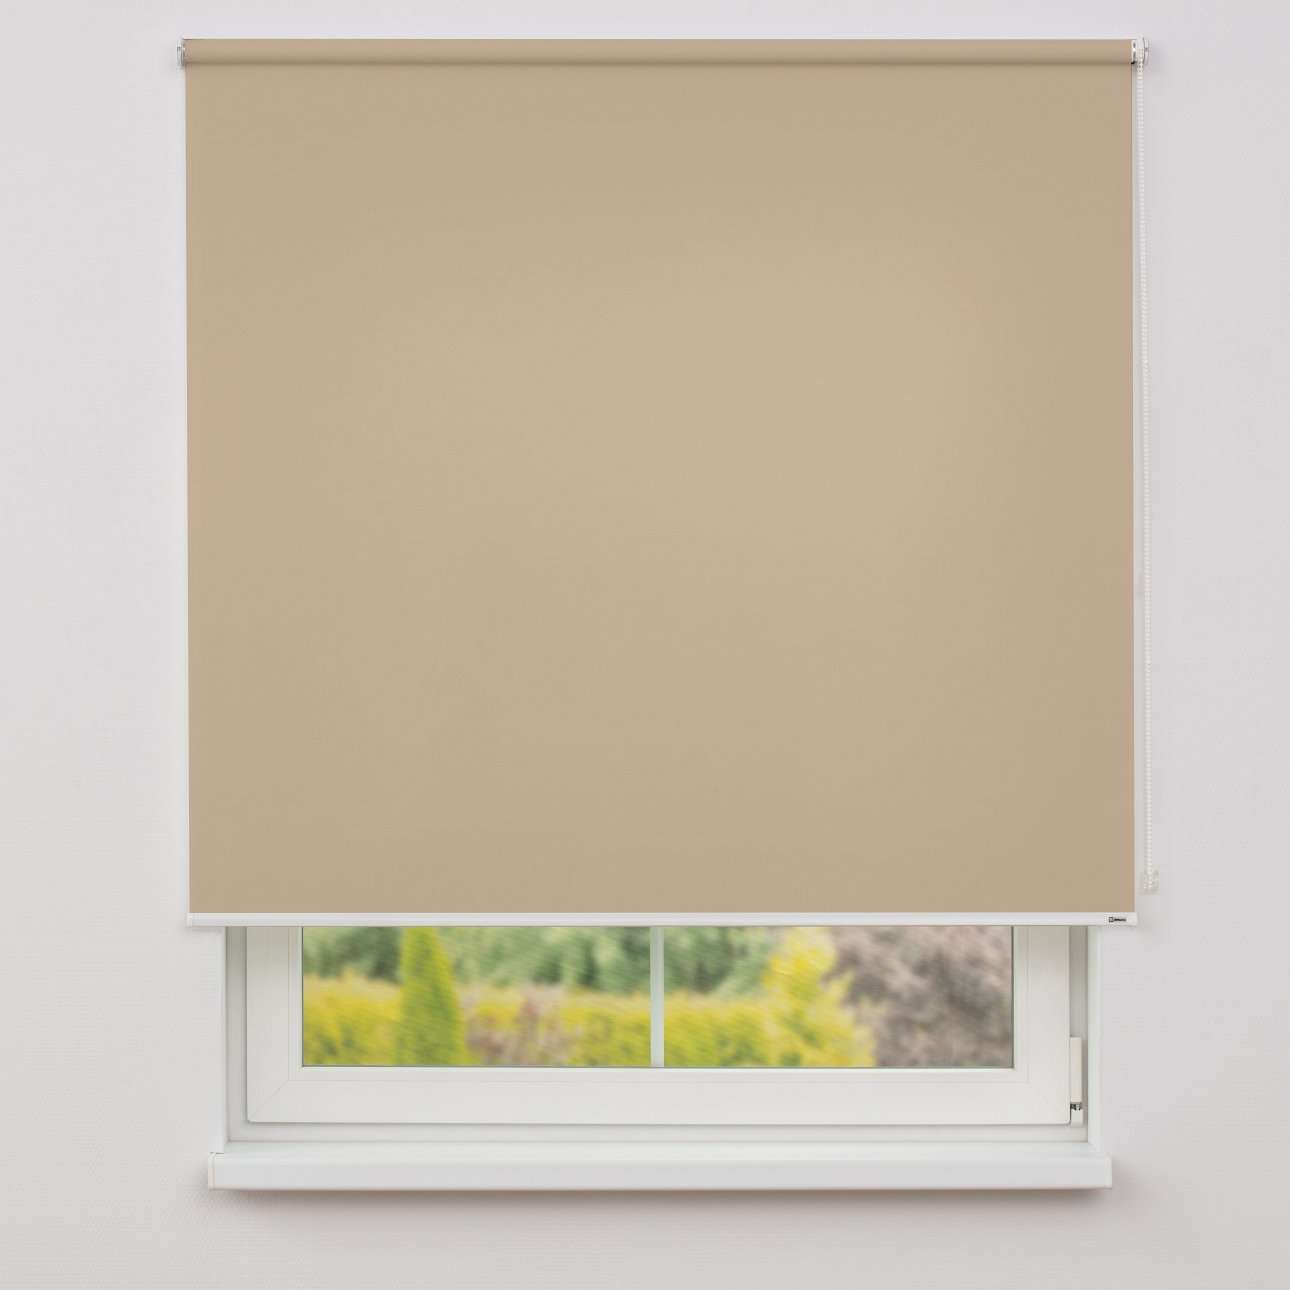 Roller blind  in collection Roller blind transparent, fabric: 4999